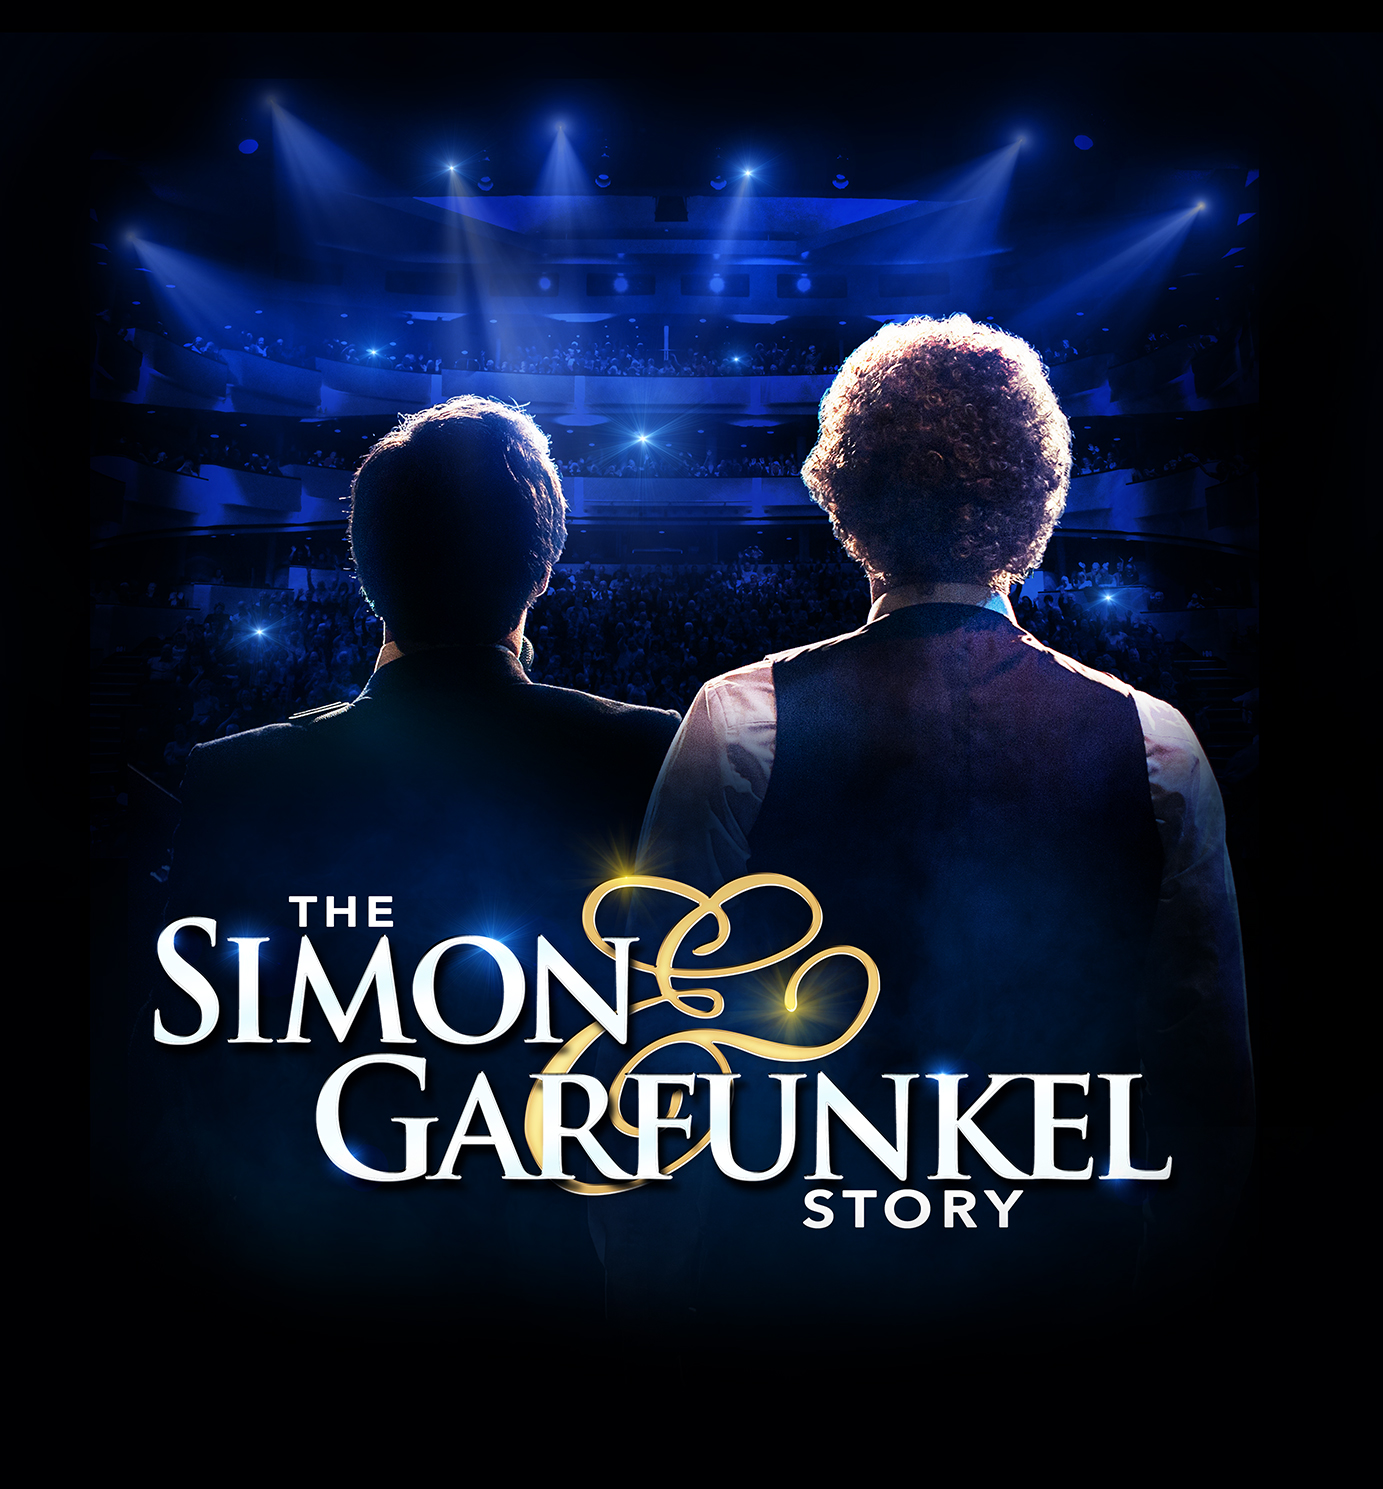 TICKETS ON SALE NOW FOR THE SIMON AND GARFUNKEL STORY